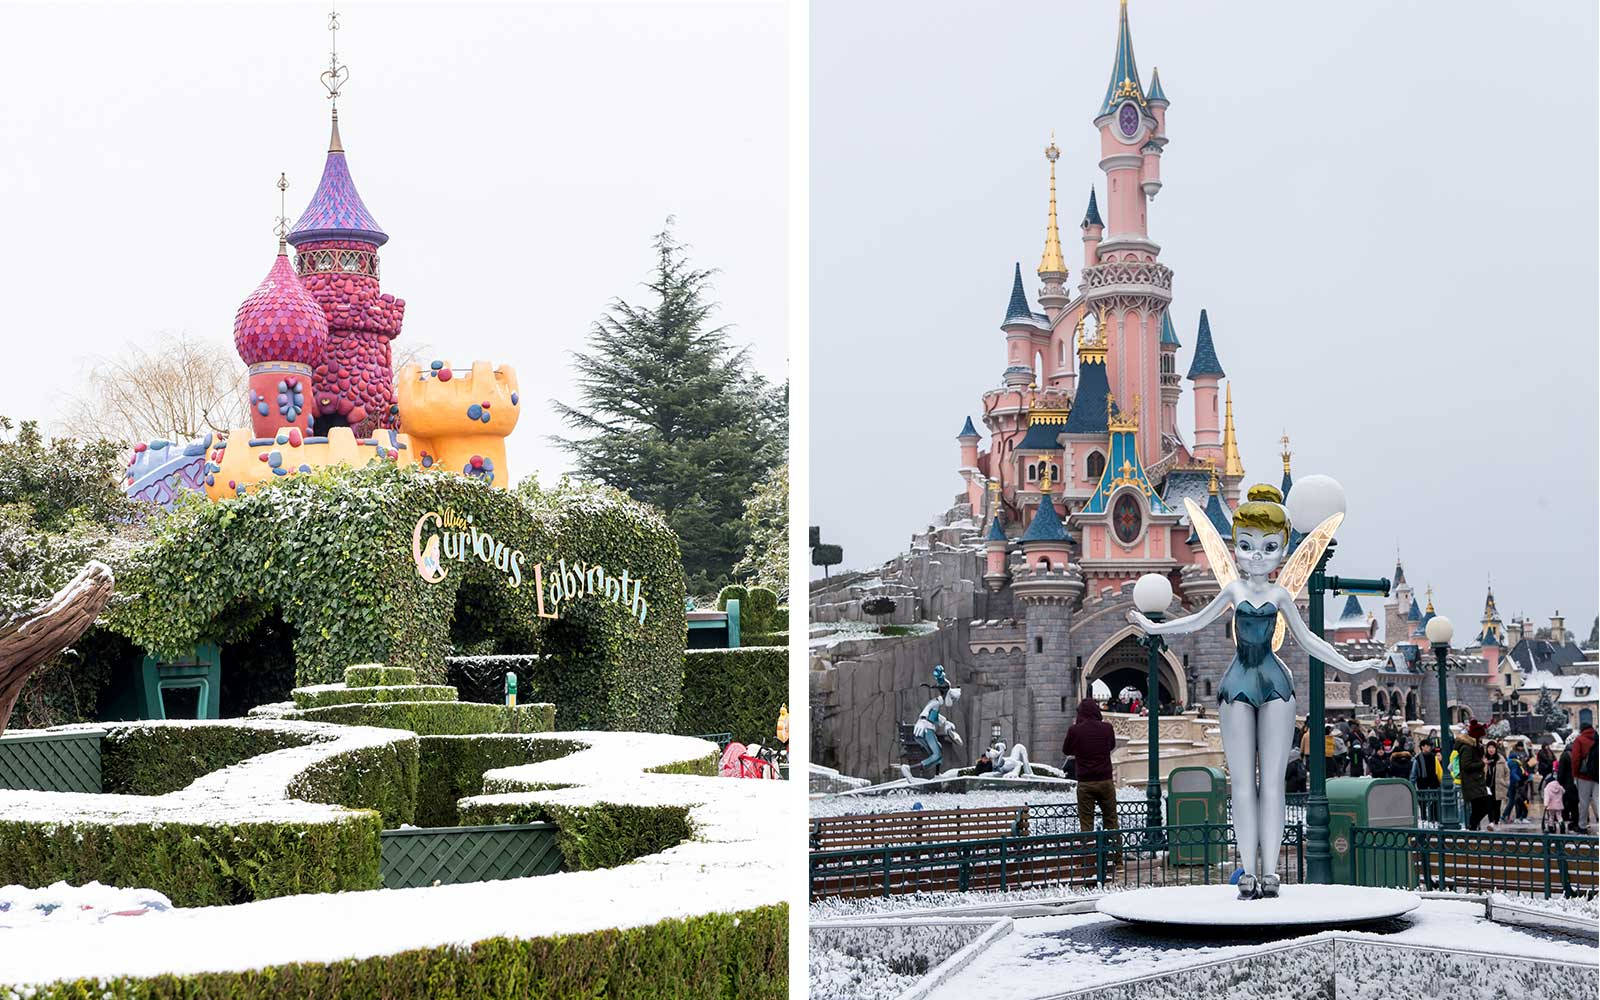 Disneyland Paris Is Covered in Snow and It Looks More Magical Than Ever